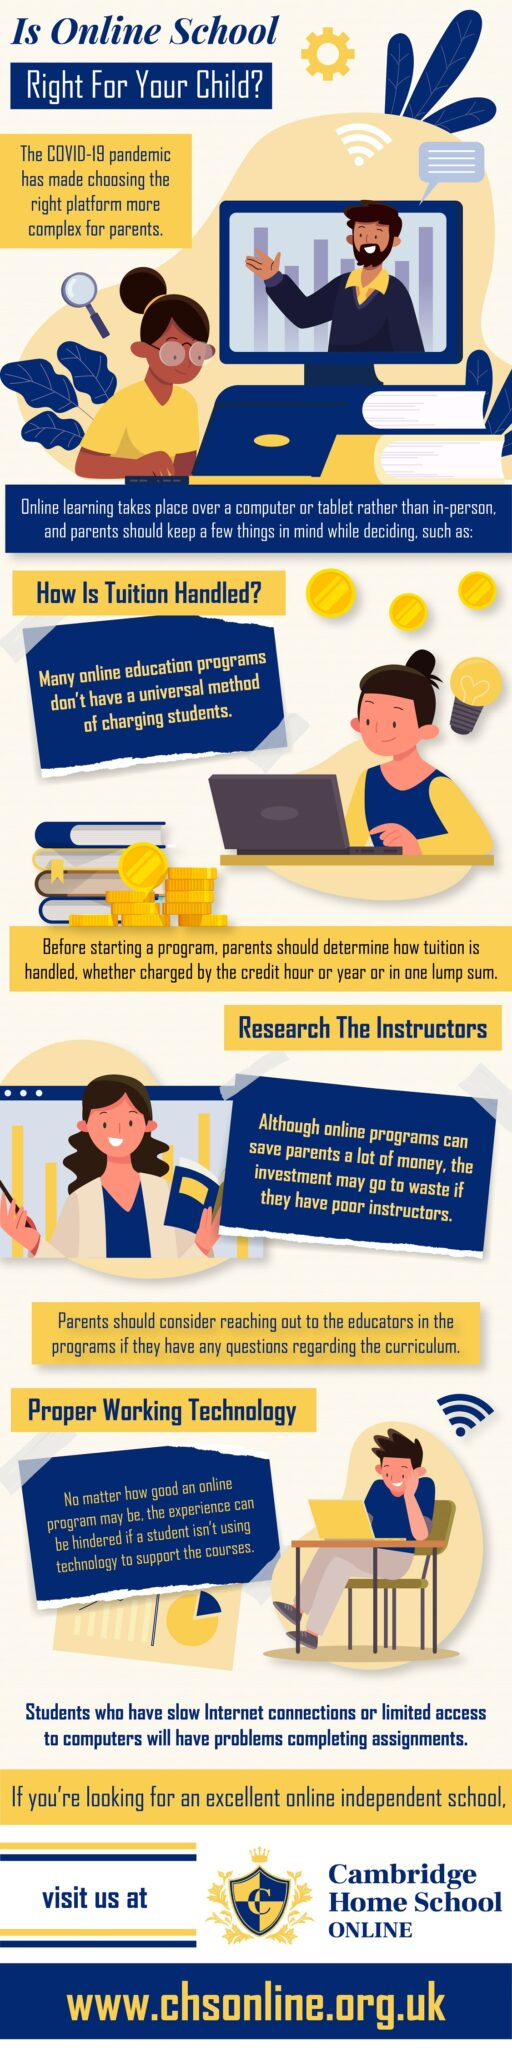 Is online school right for your child